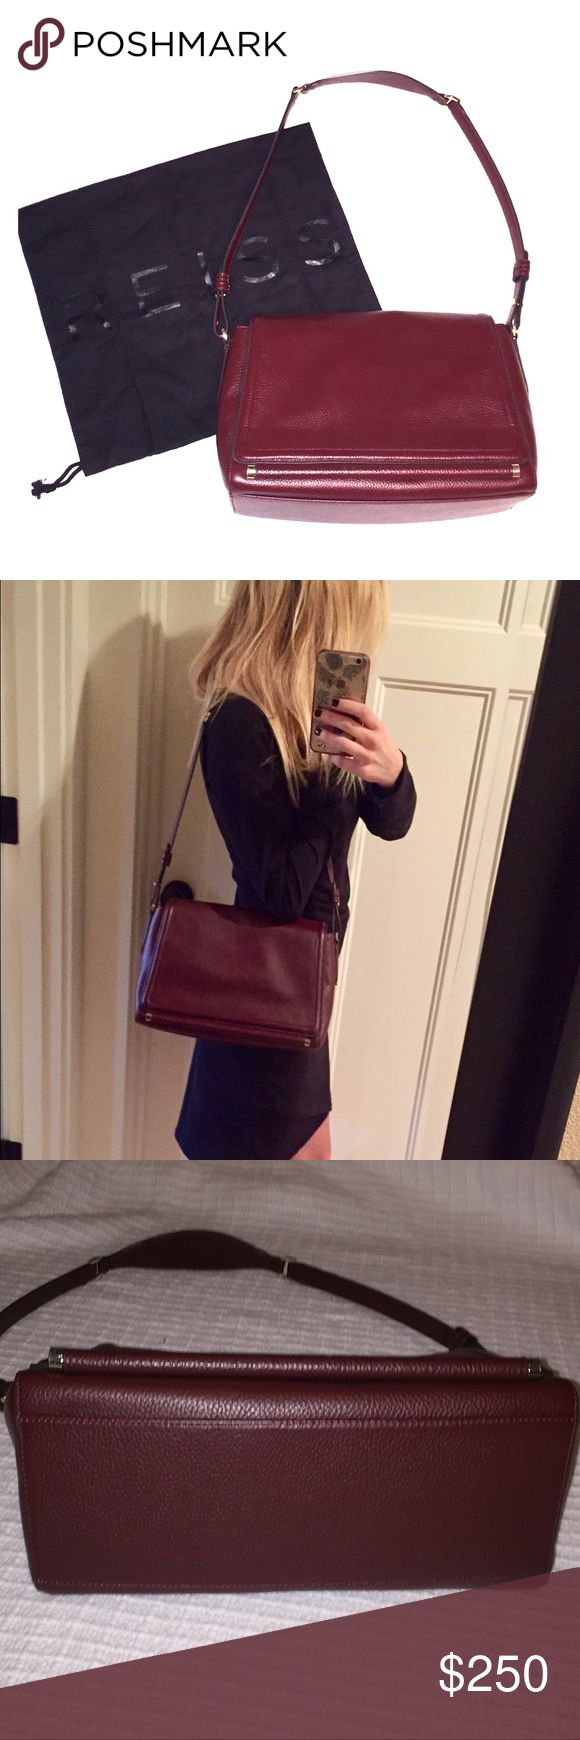 Reiss purse - leather shoulder bag Brand new, leather should bag. Dark maroon leather and black cloth interior. Comes with original storage bag. Has flap with magnetic closure and inside zipper. Reiss Bags Shoulder Bags